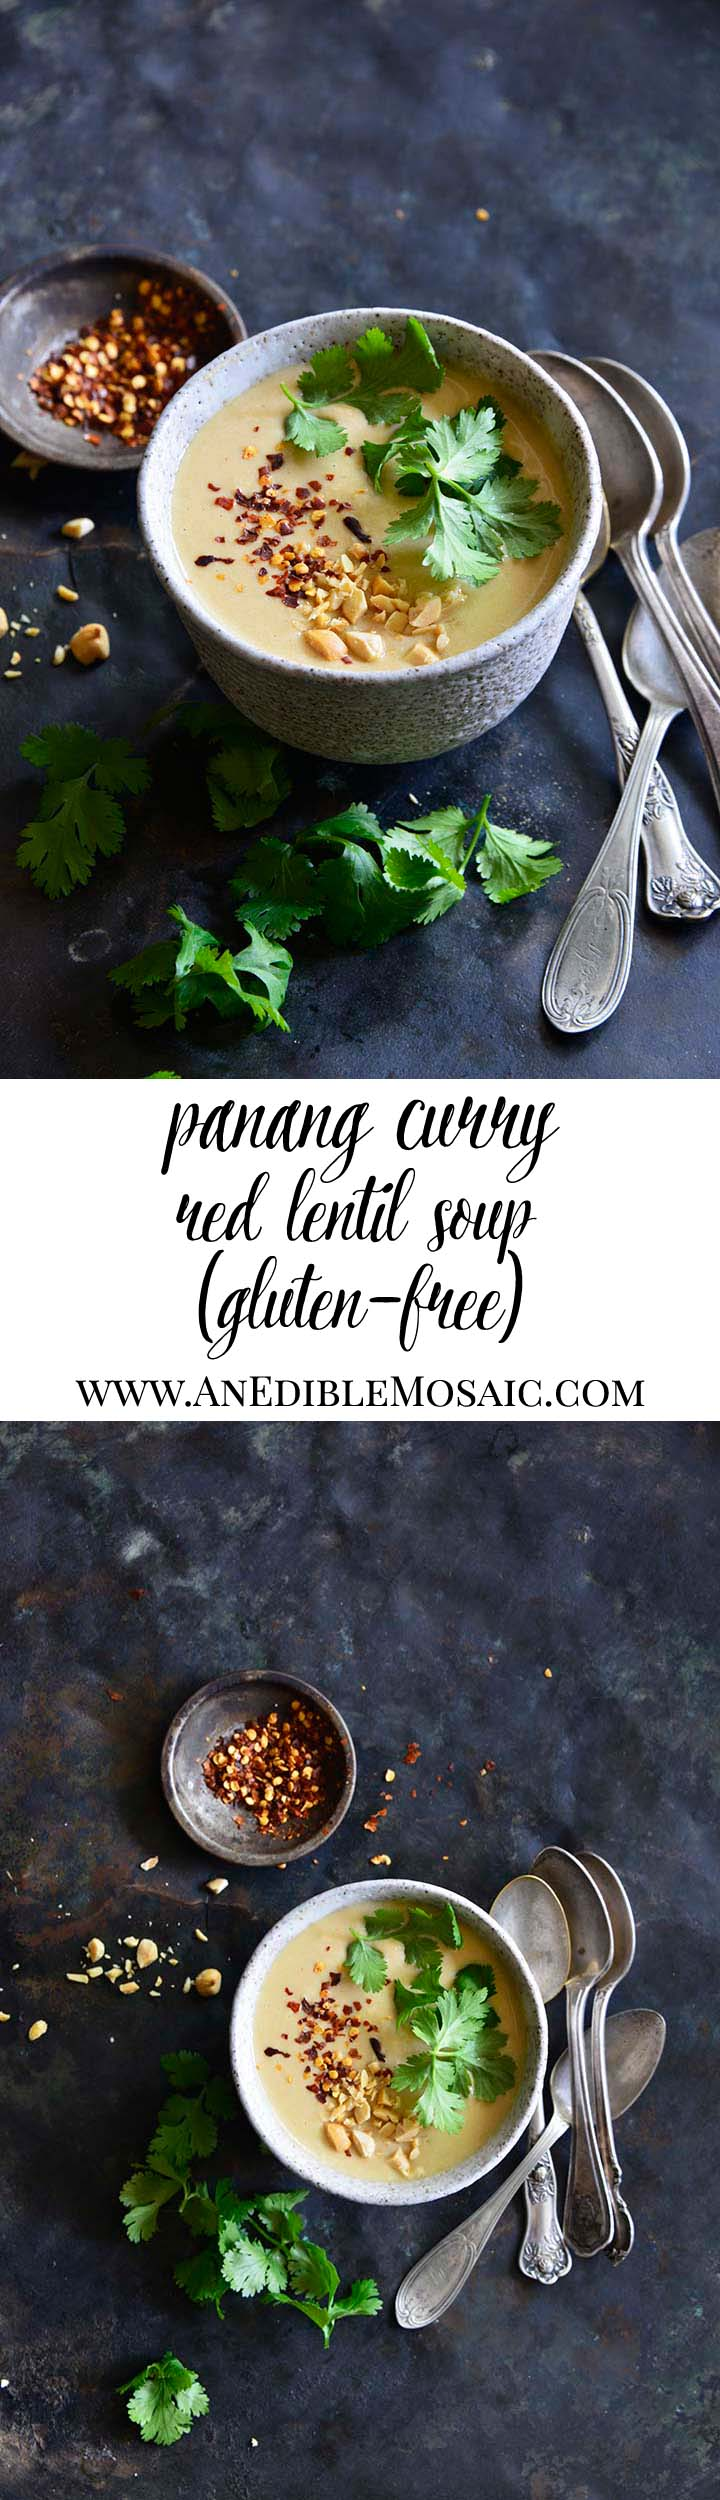 Panang Curry Red Lentil Soup Long Pin